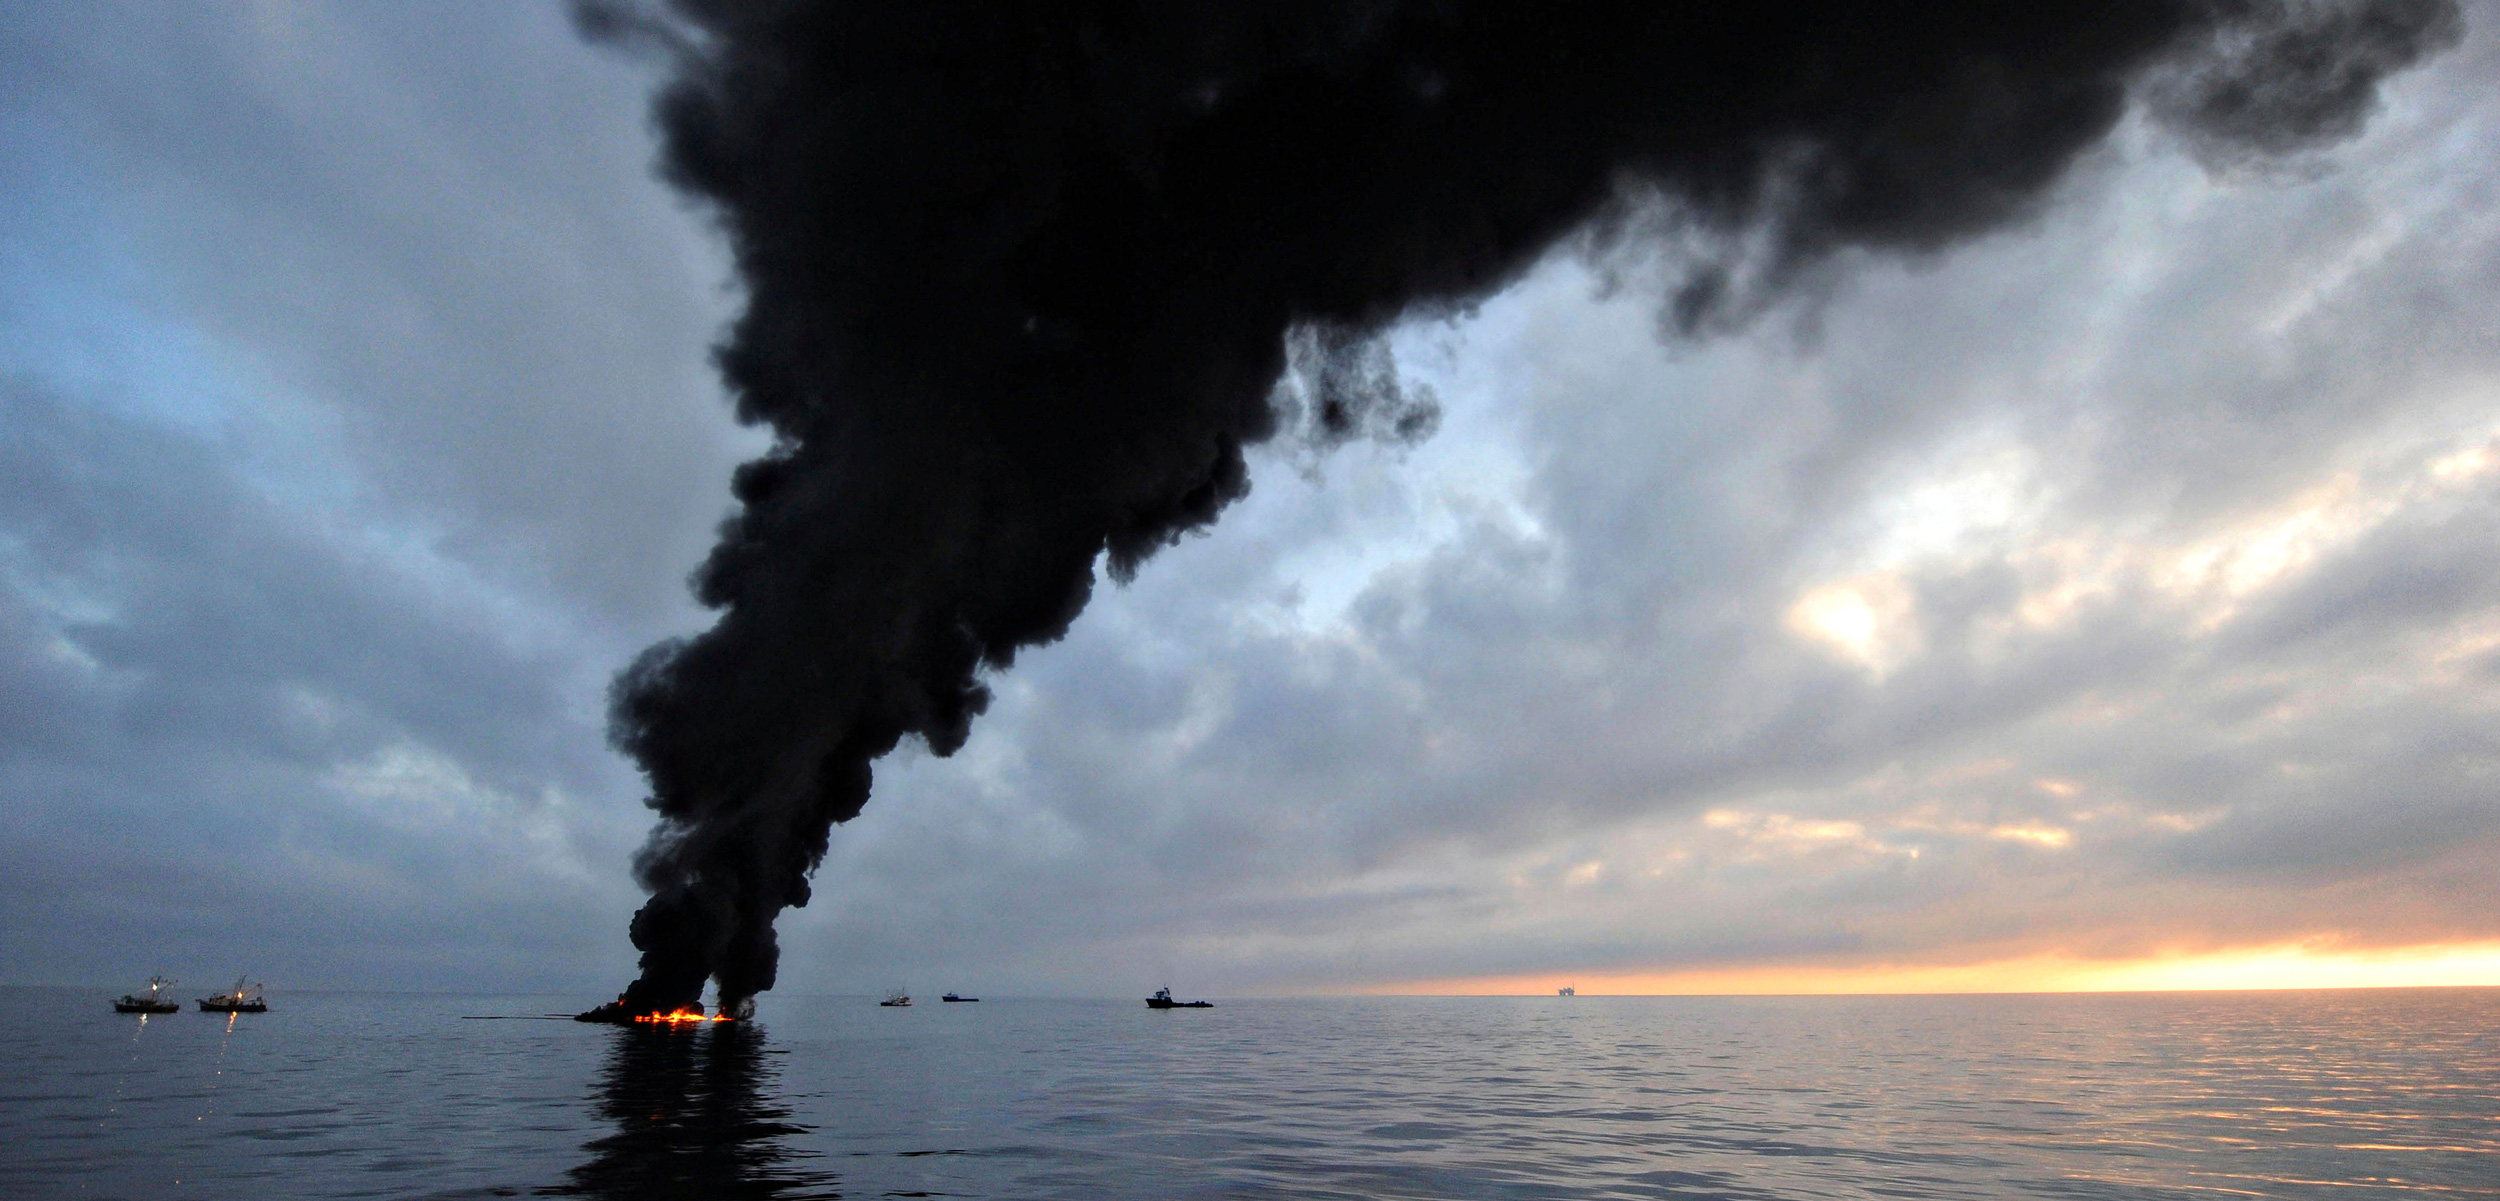 oil from Deepwater Horizon spill being burned